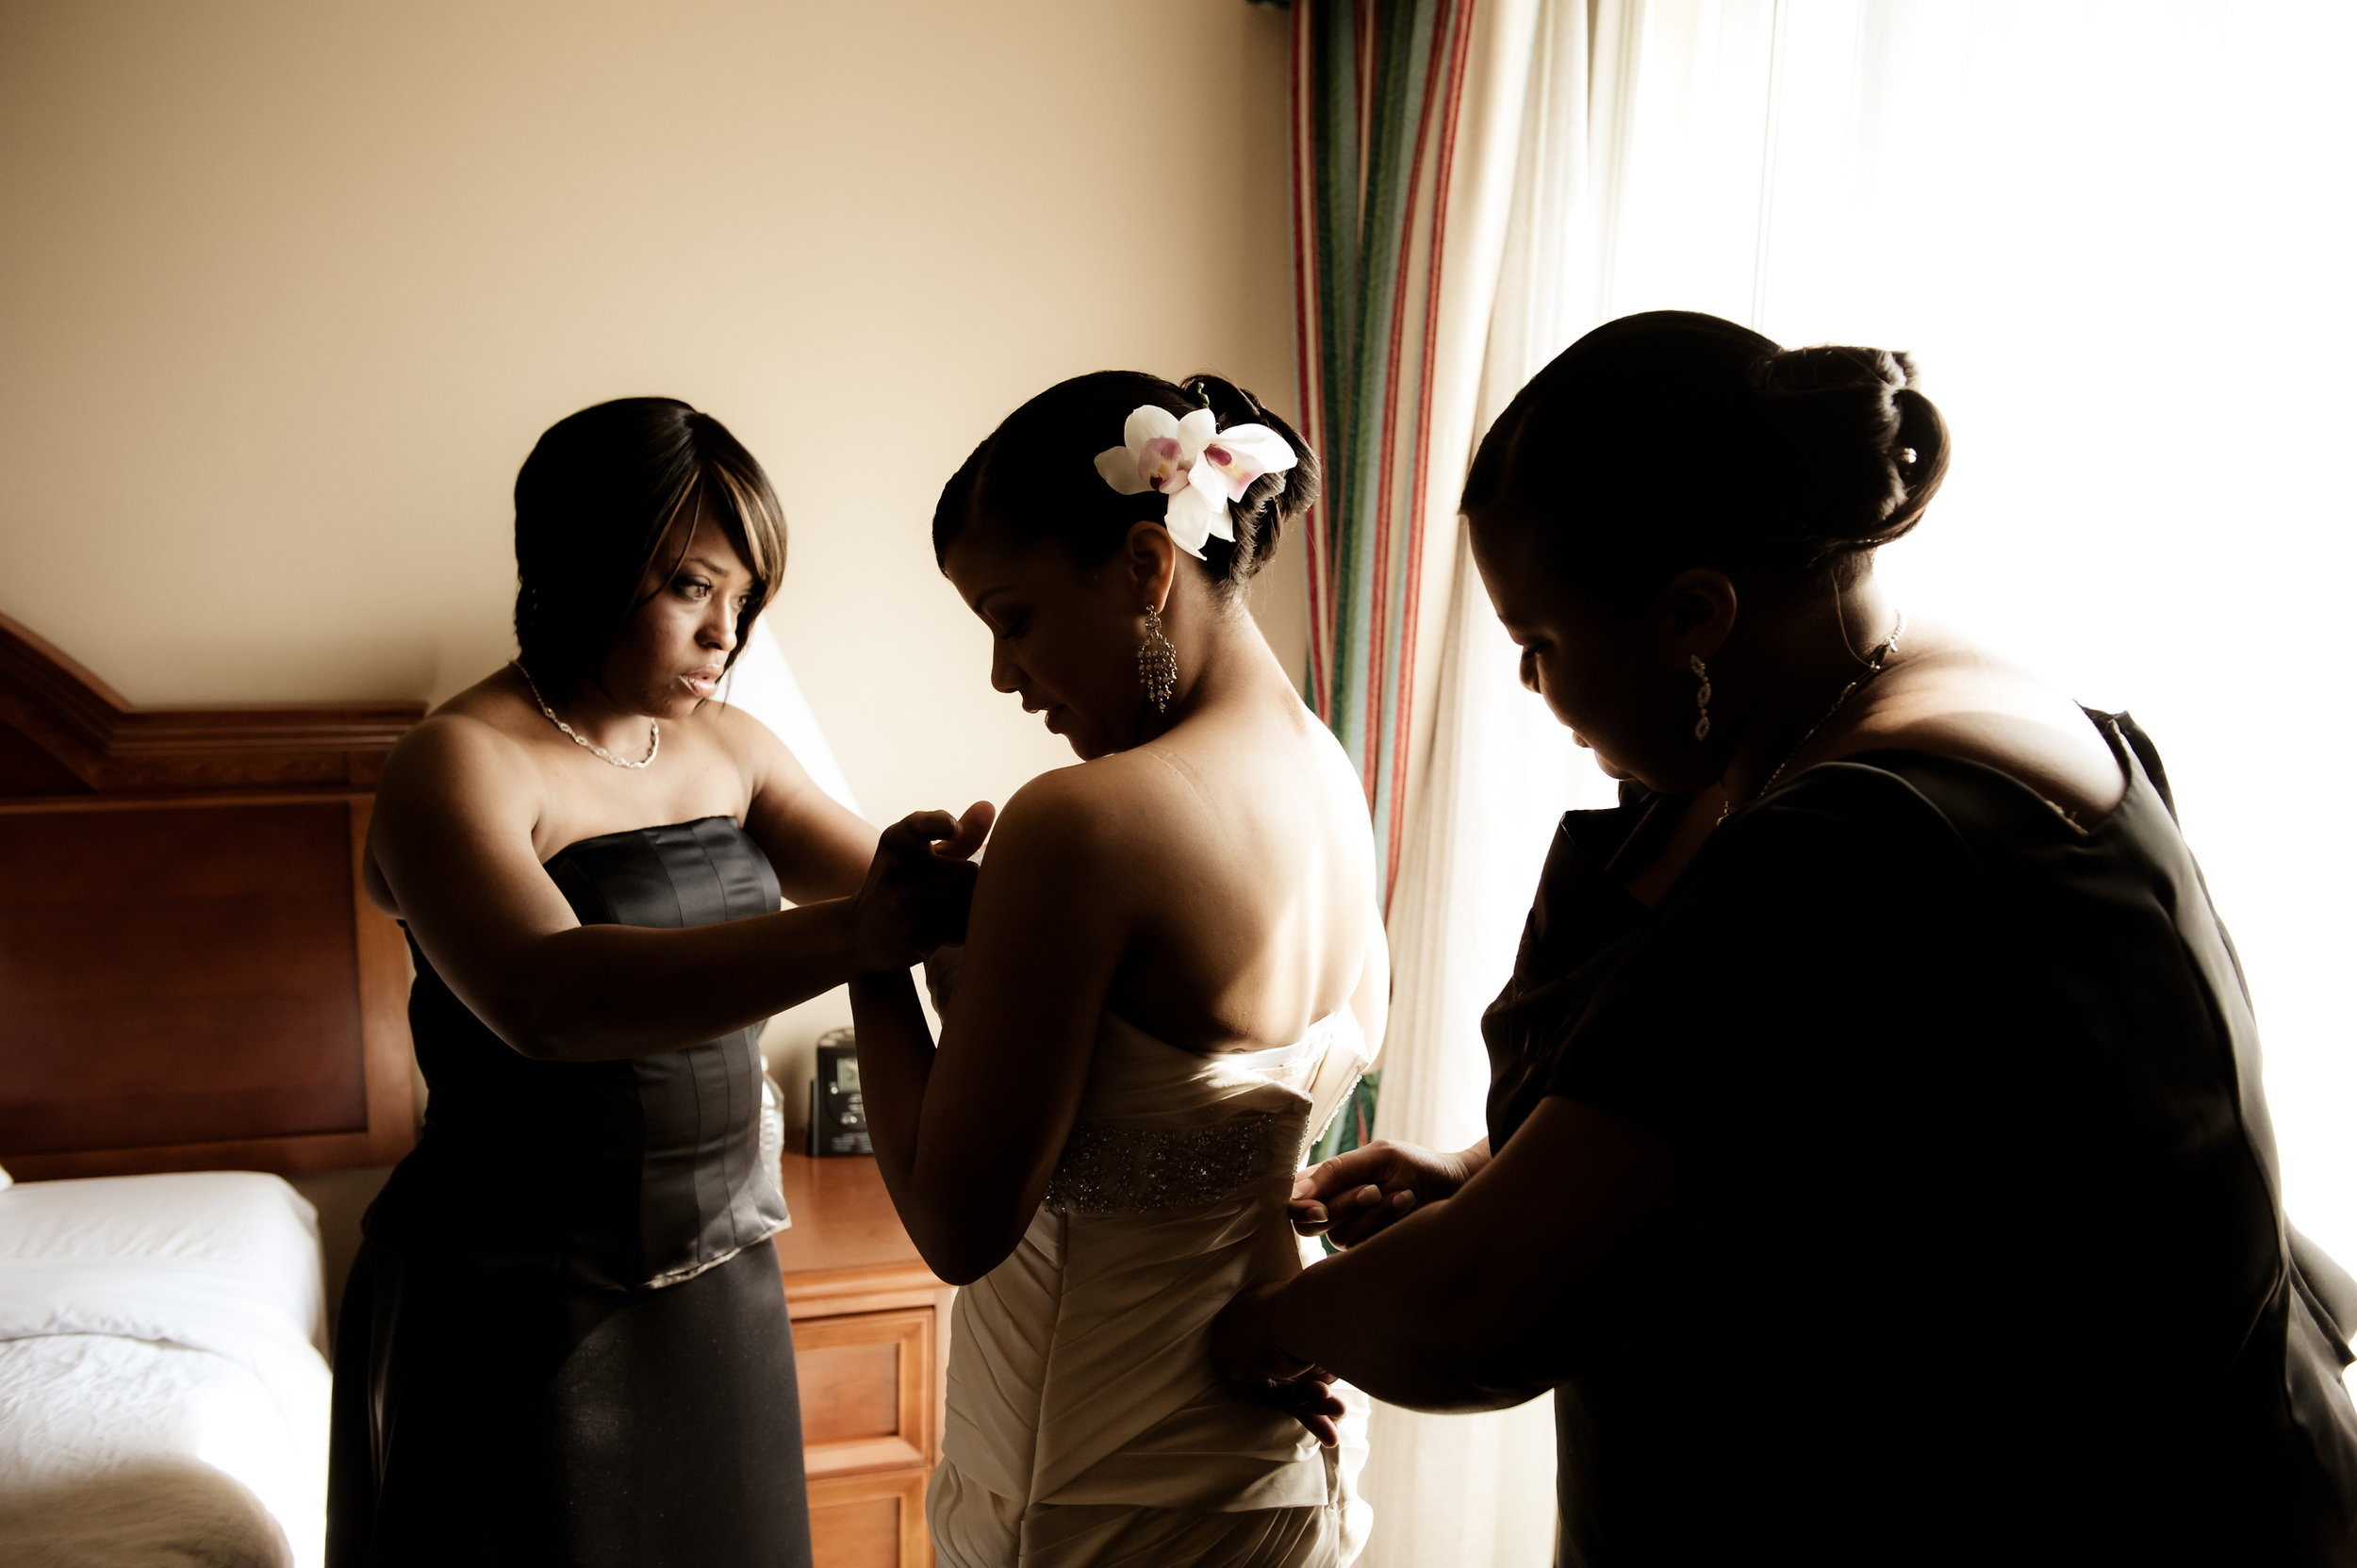 Bridesmaids help bride prepare for a wedding, New Orleans